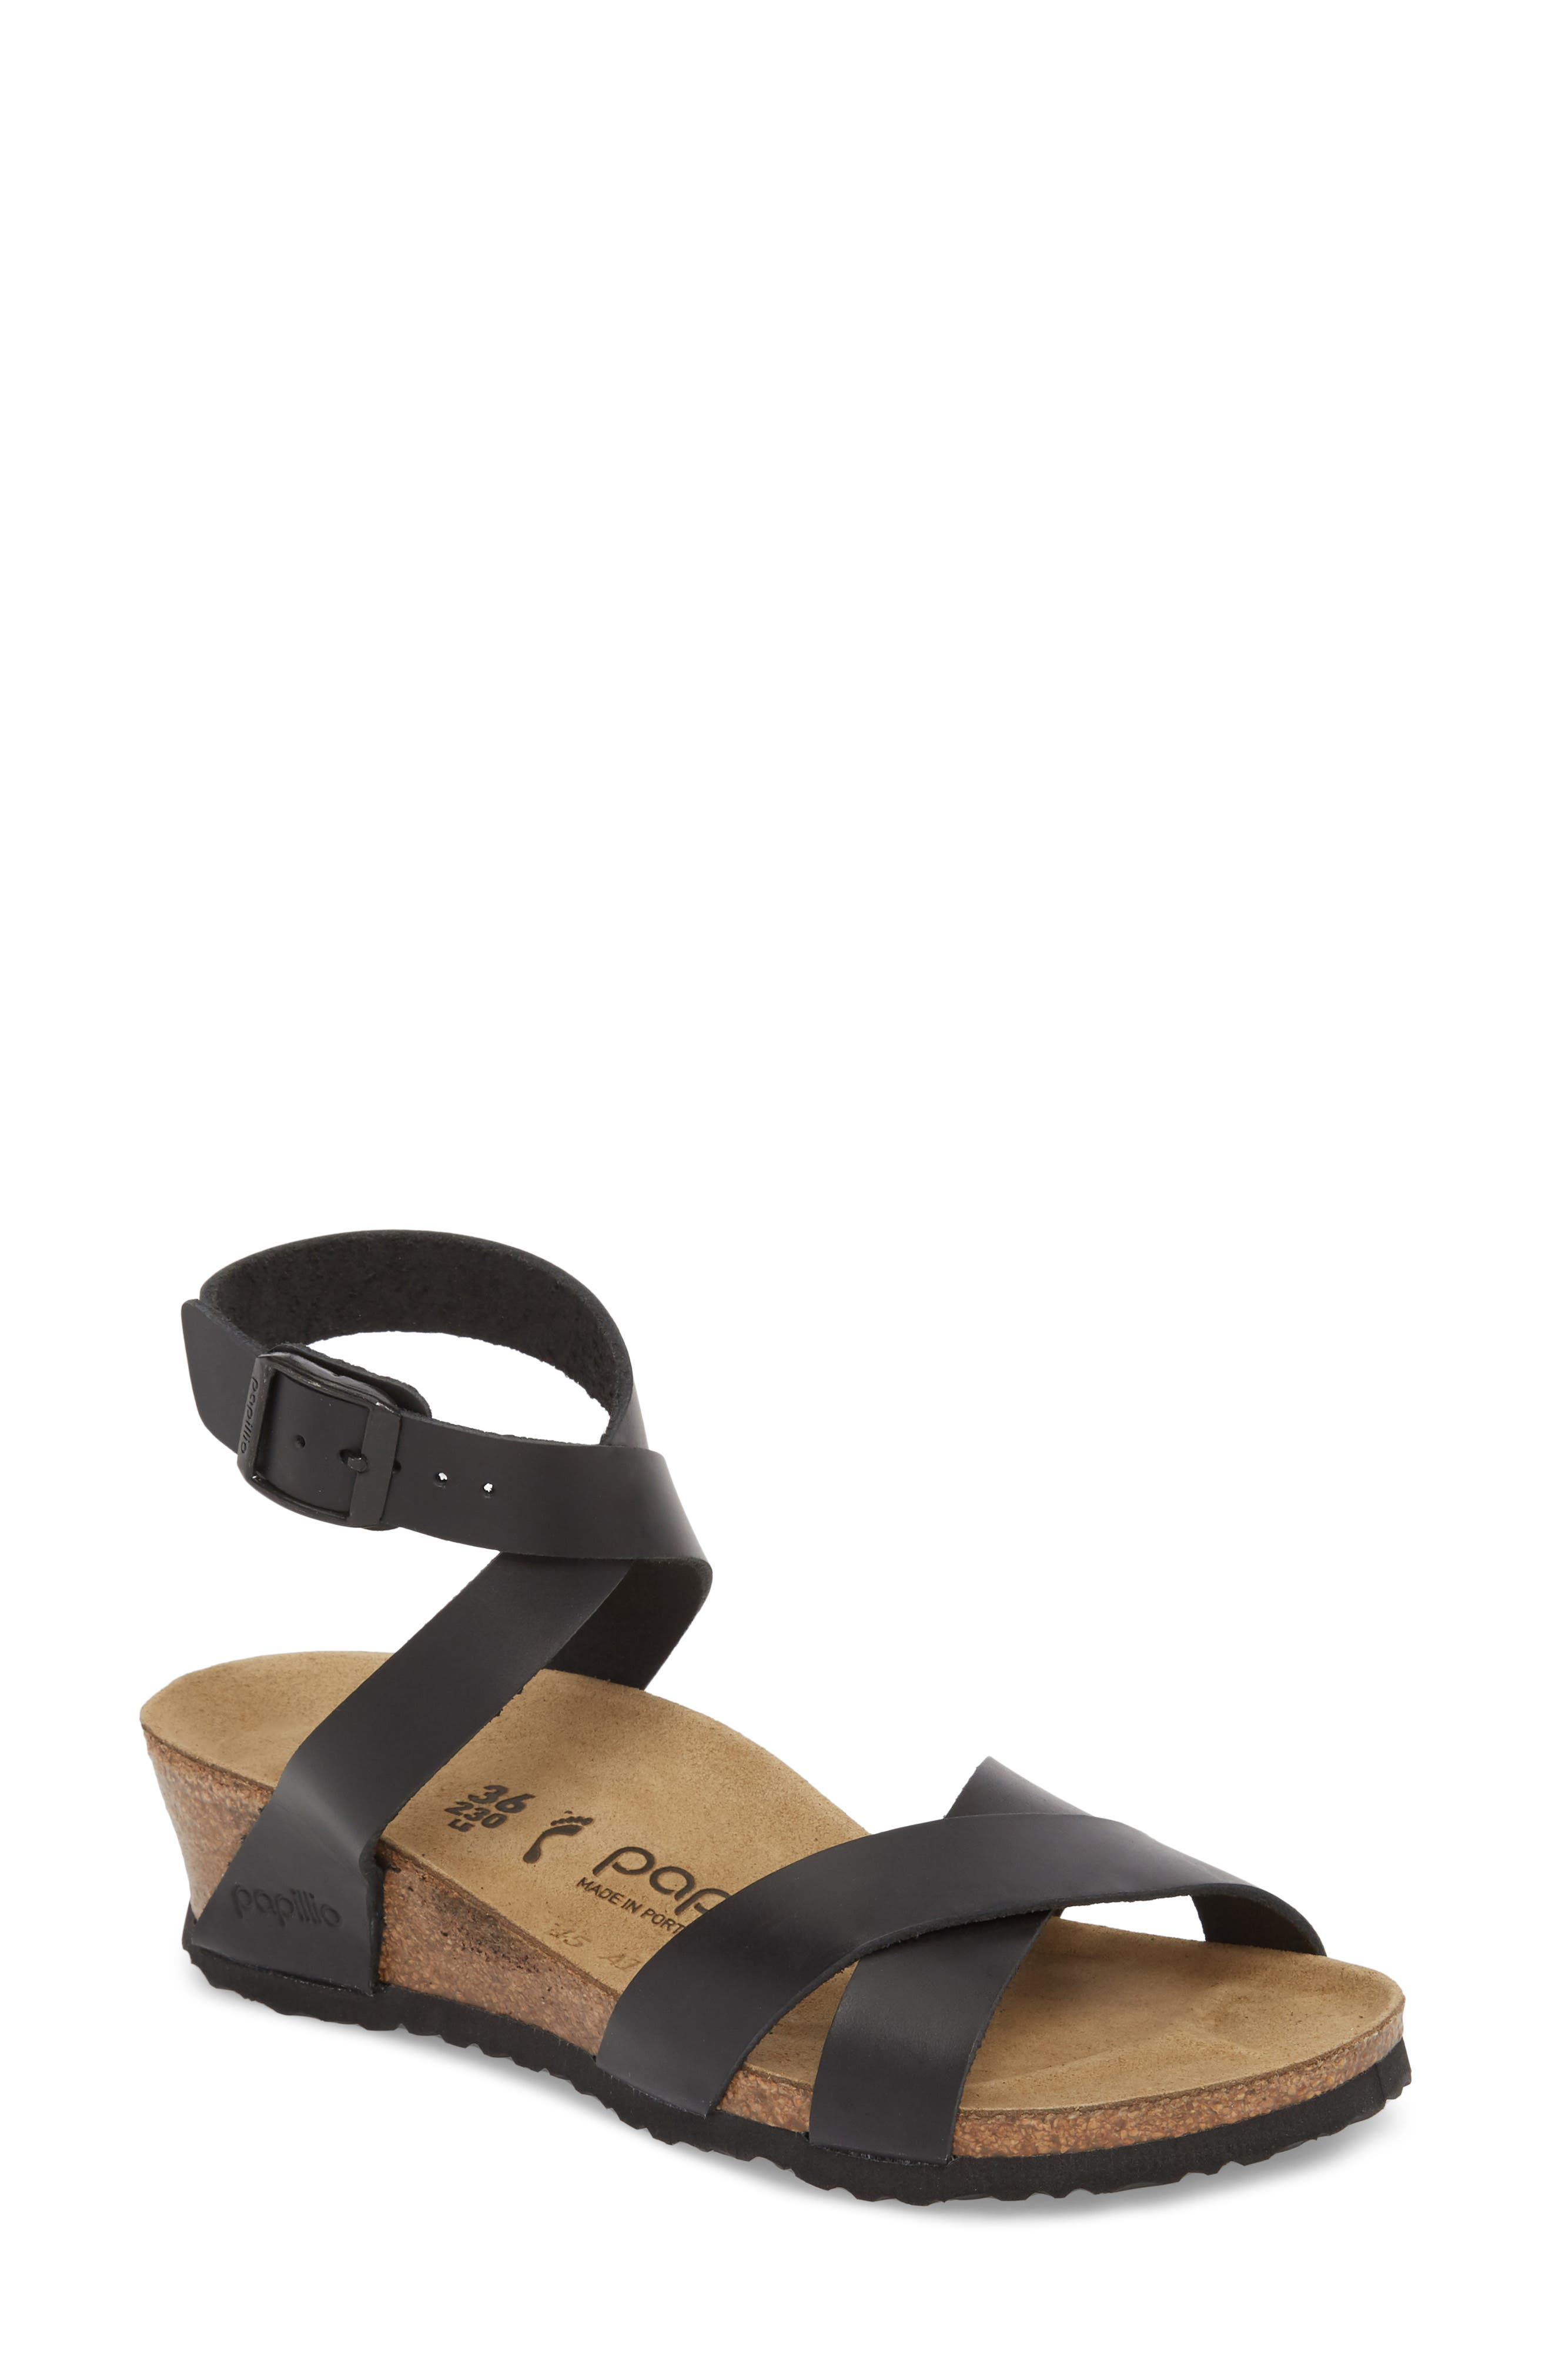 Papillio by Birkenstock Lola Wedge Sandal,                         Main,                         color, Black Leather